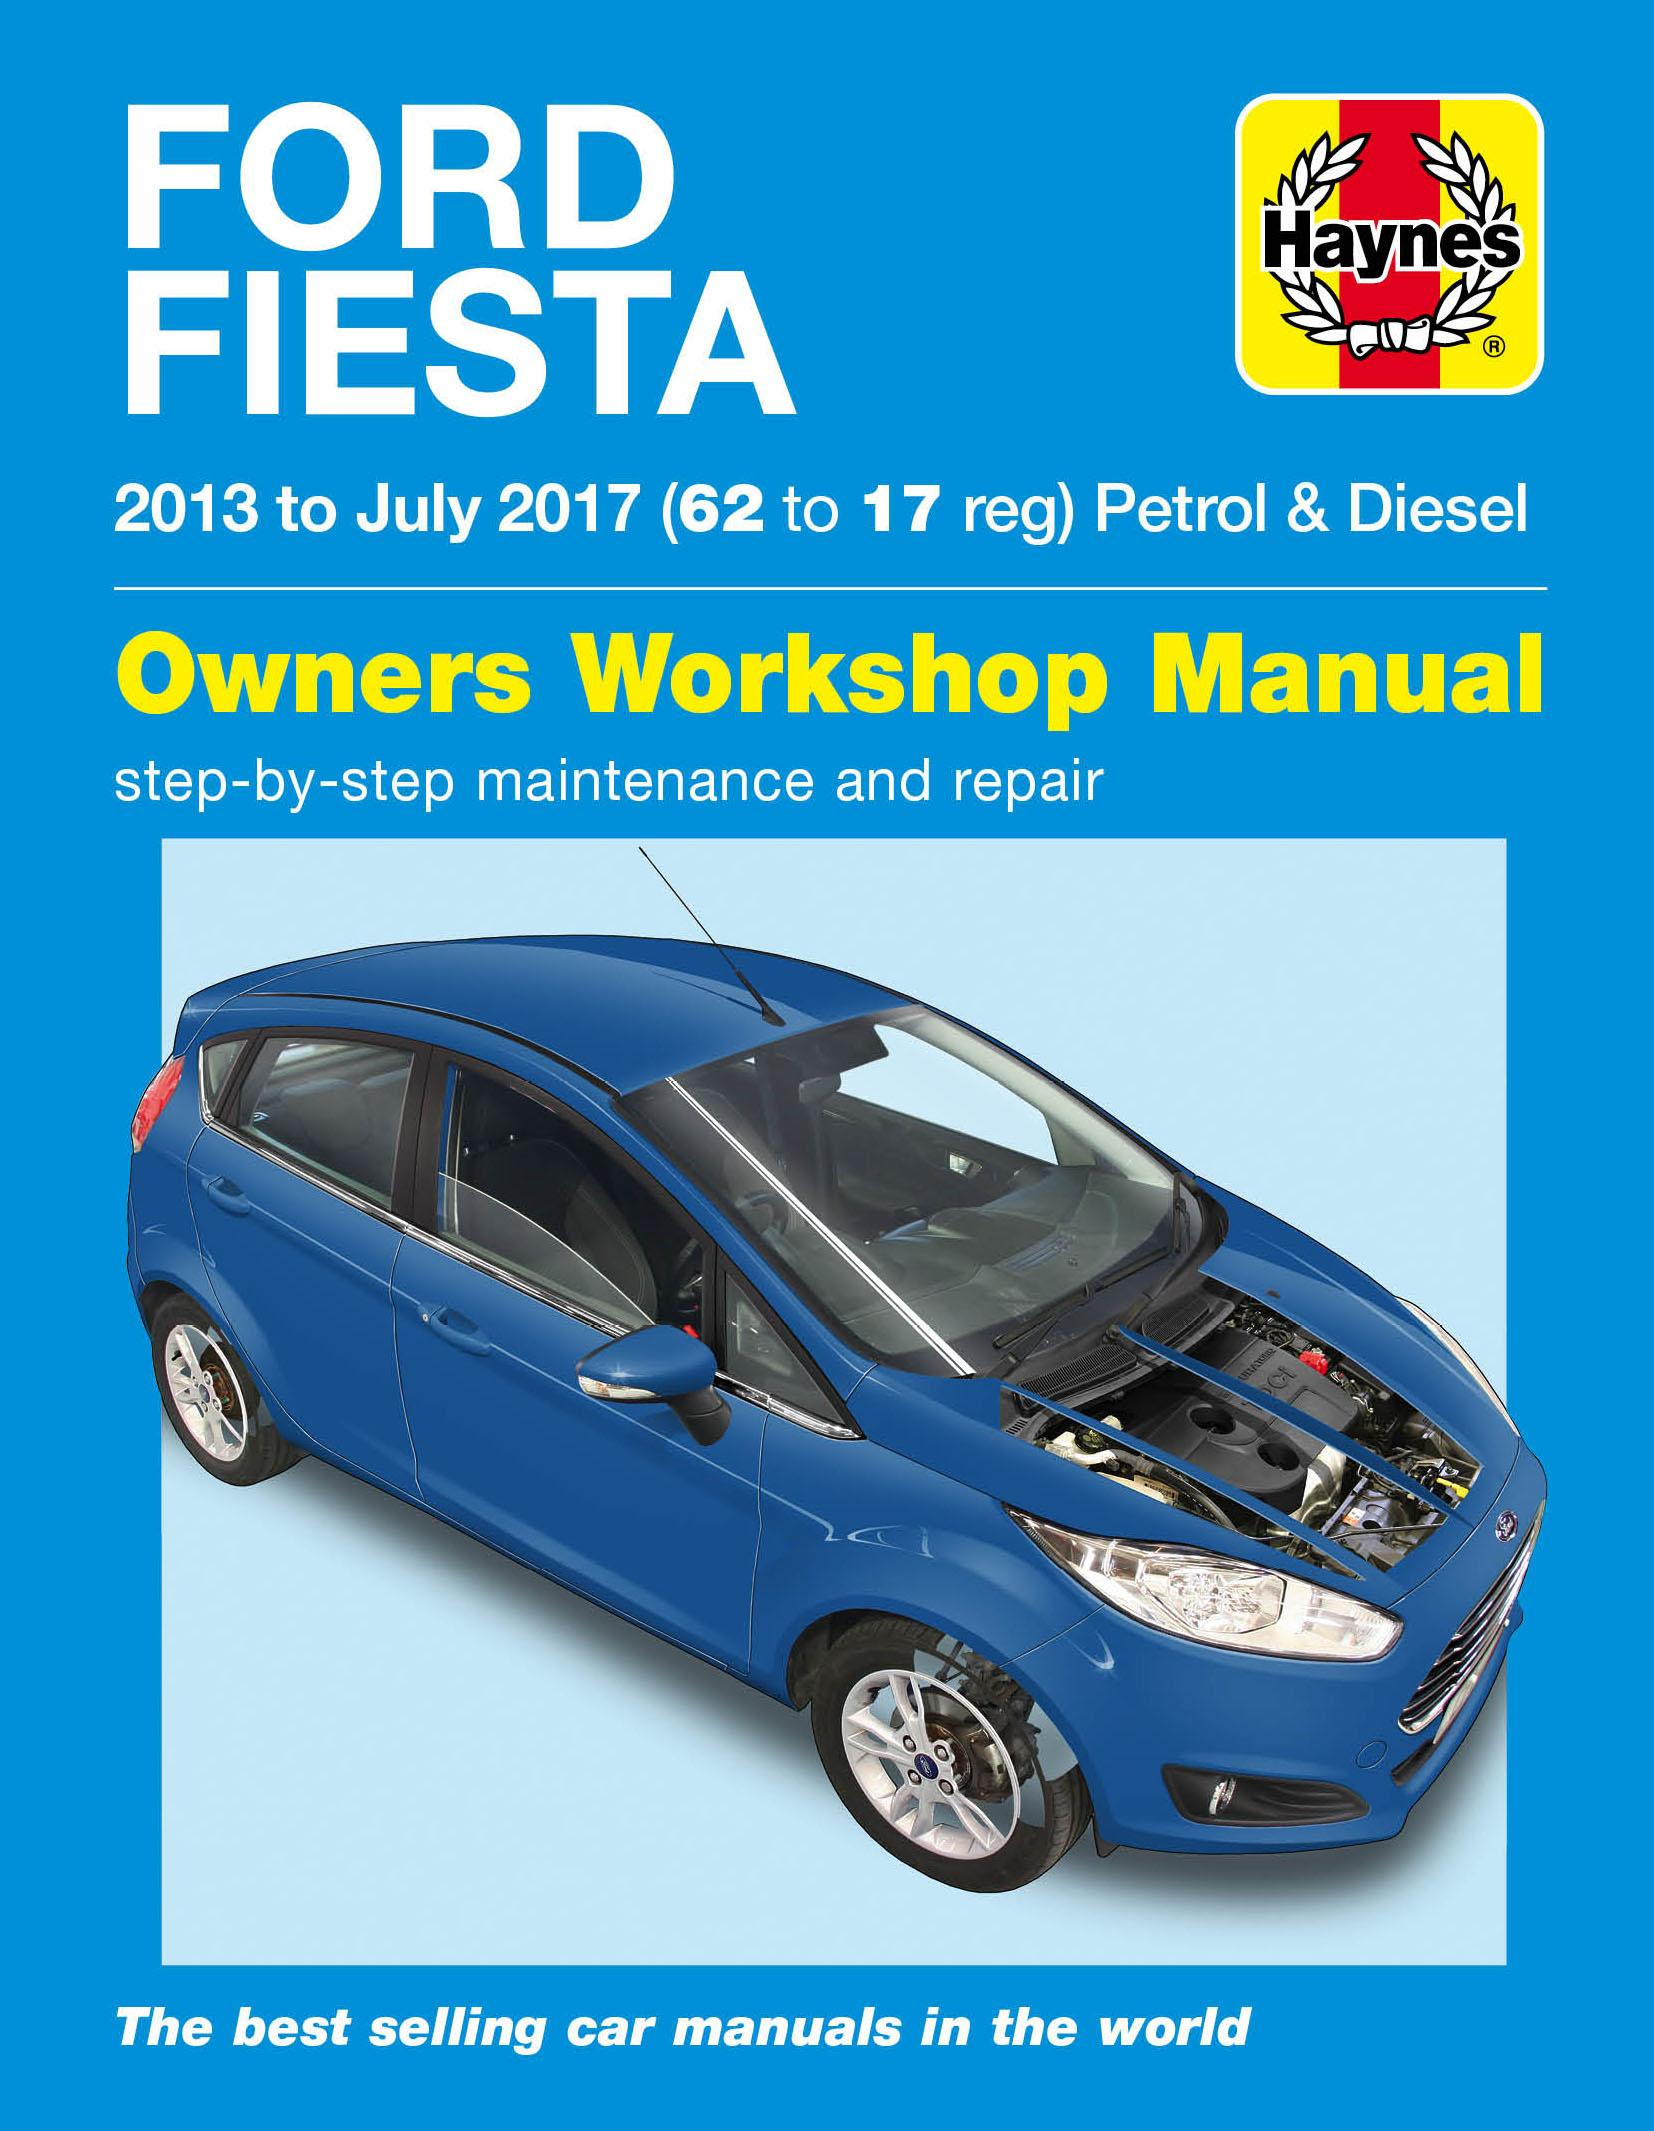 haynes ford fiesta apr 13 17 ma rh halfords com 2012 ford fiesta owners manual 2012 ford fiesta owners manual pdf